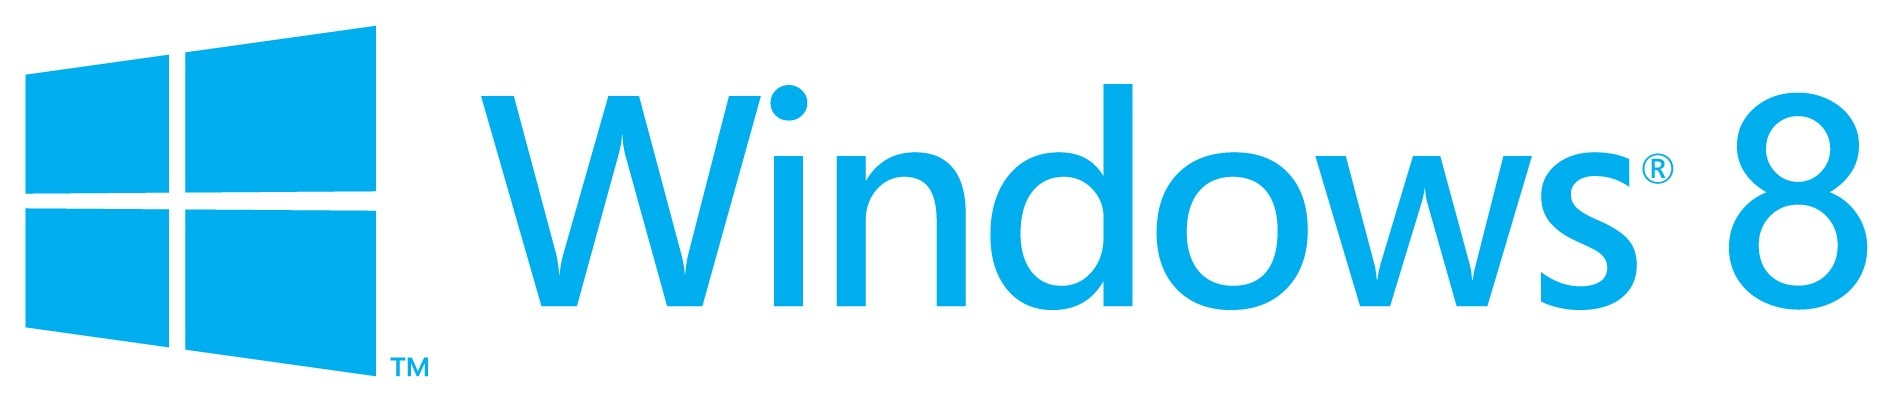 New Windows 8 Logo Is Pure Genius